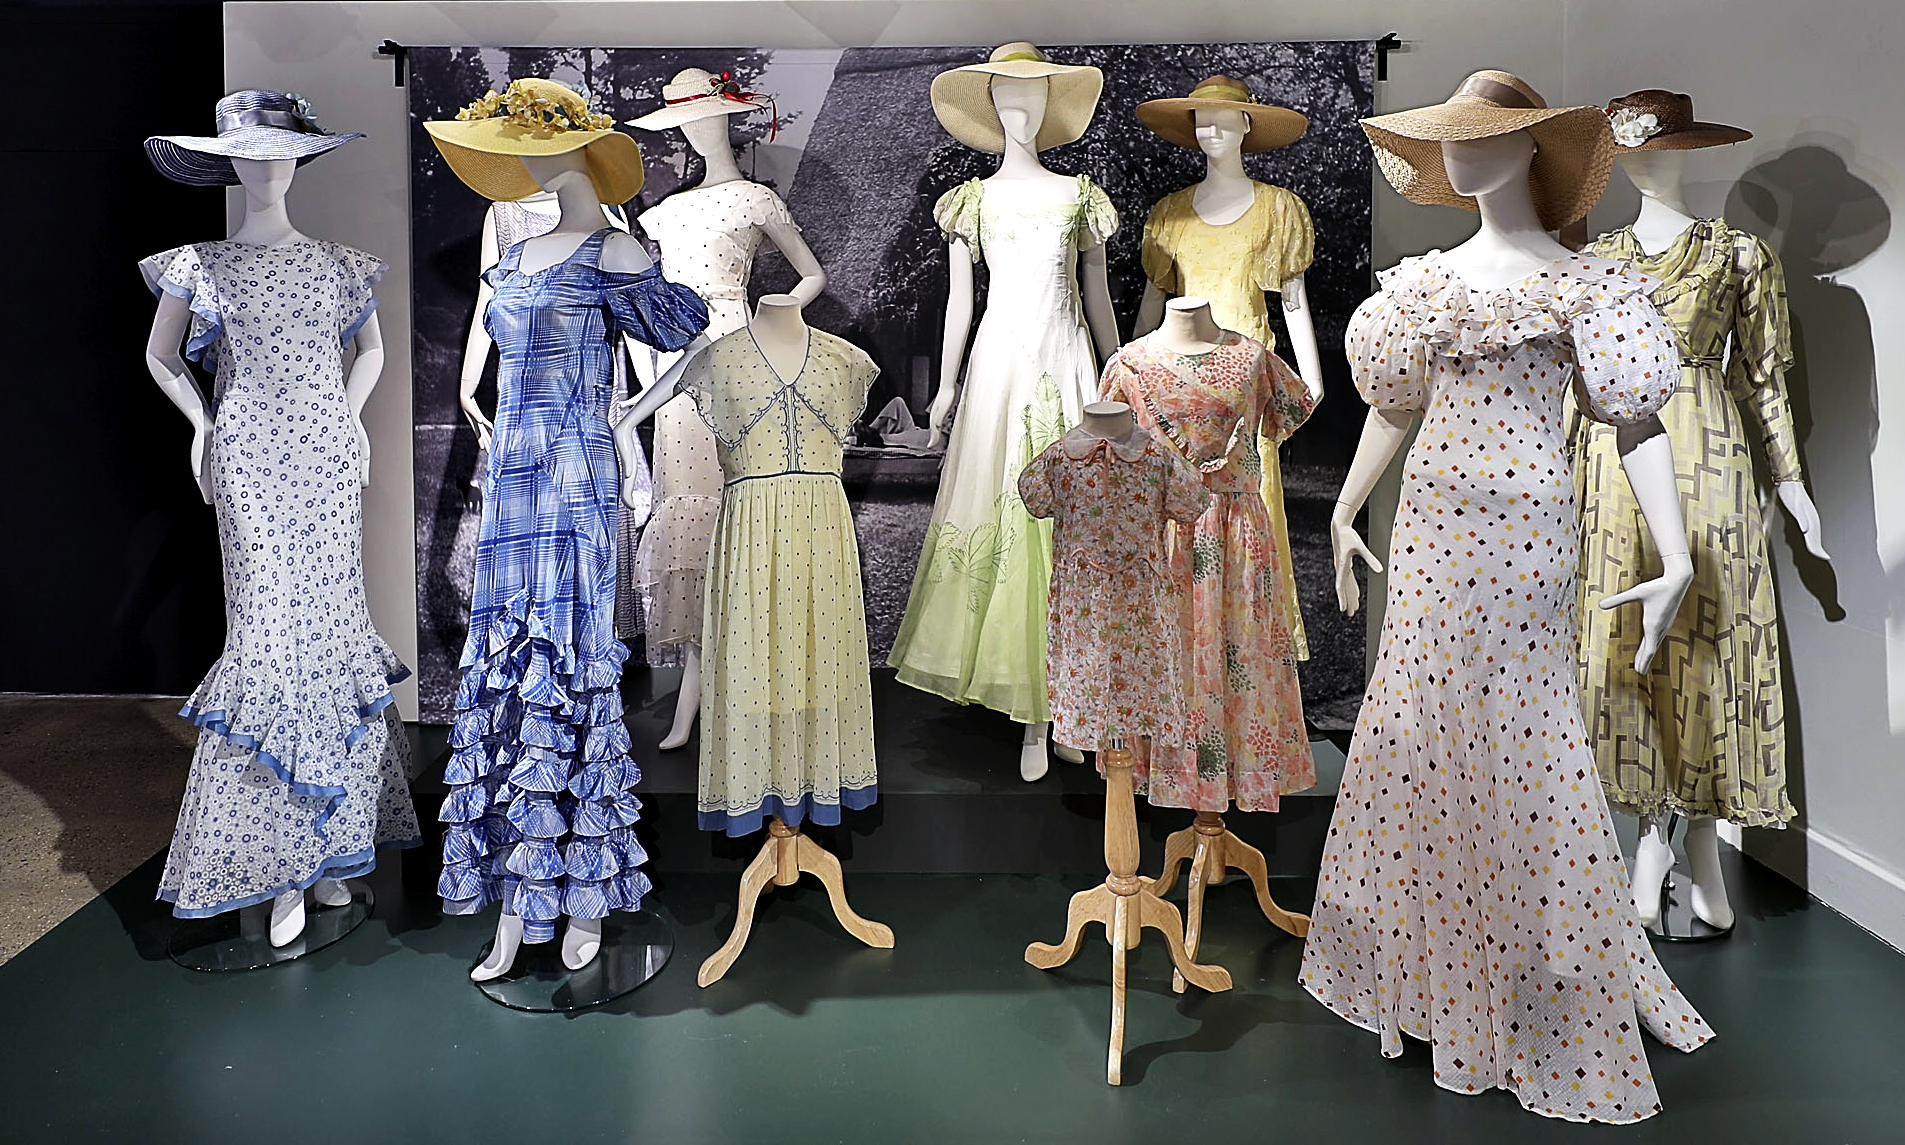 Night & Day: 1930s Fashion and Photographs, at the Fashion and Textile Museum, London, until 20 January 2019